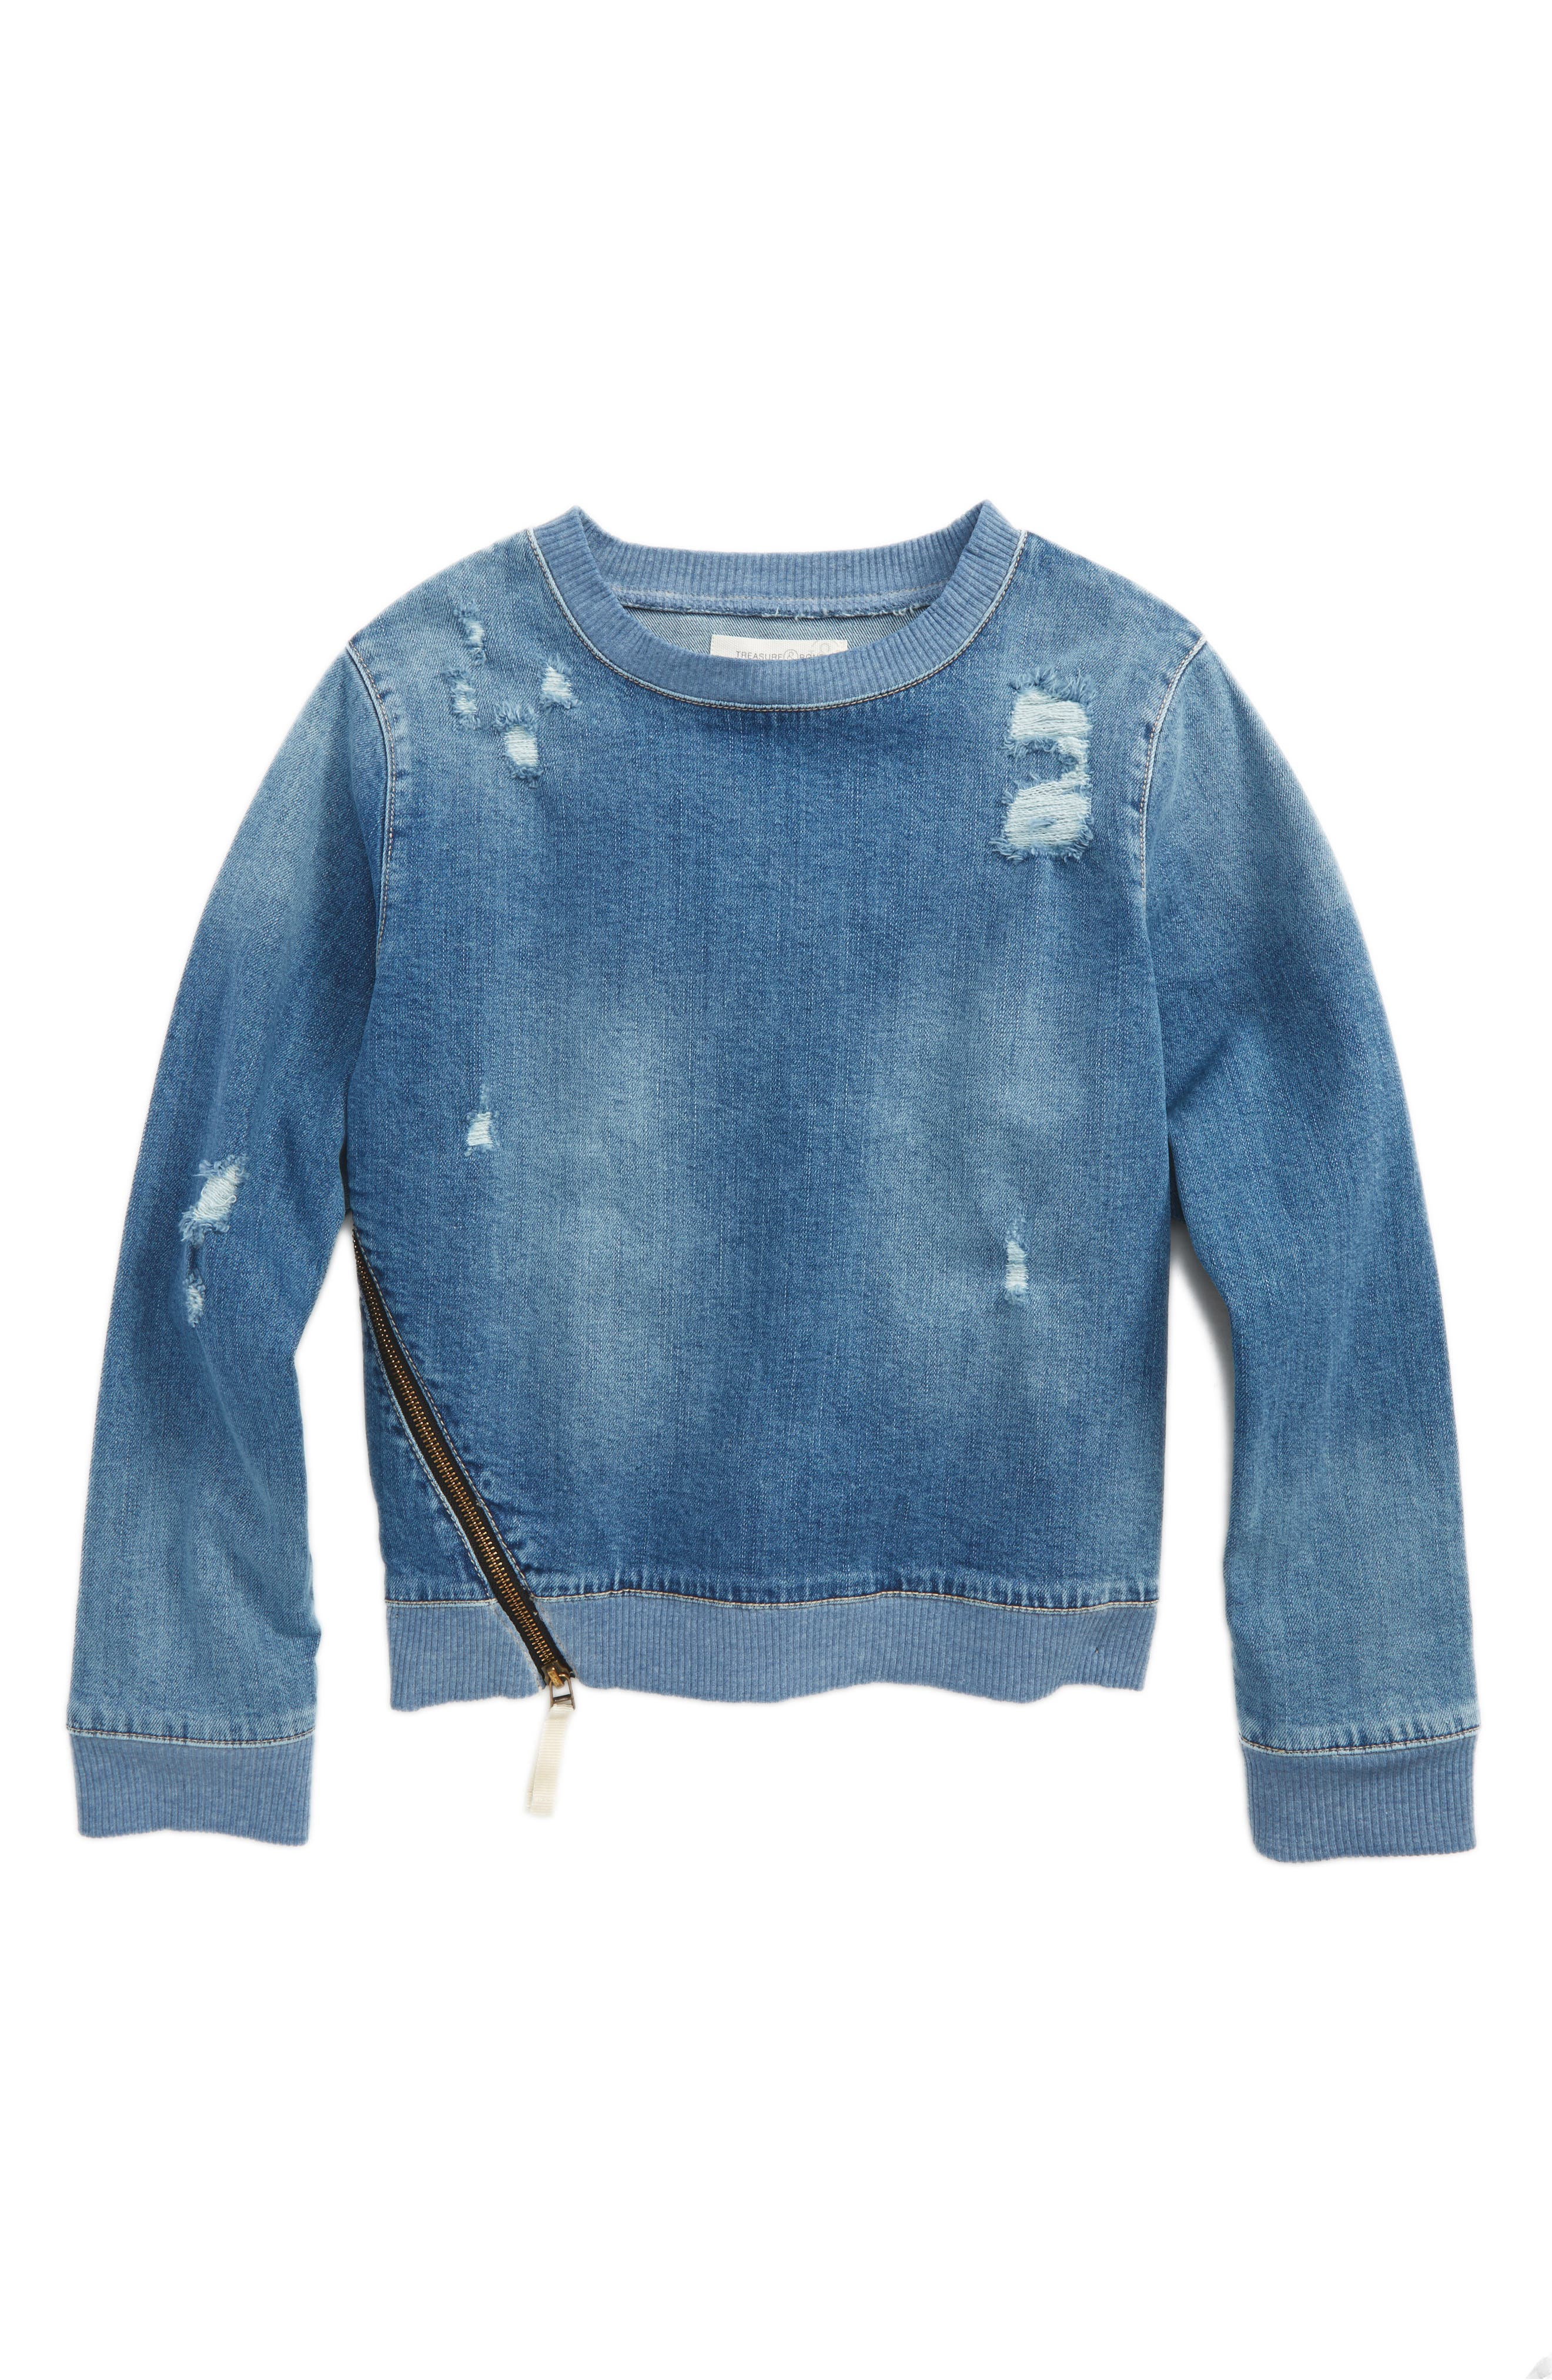 Main Image - Treasure & Bond Denim Sweatshirt (Big Girls)